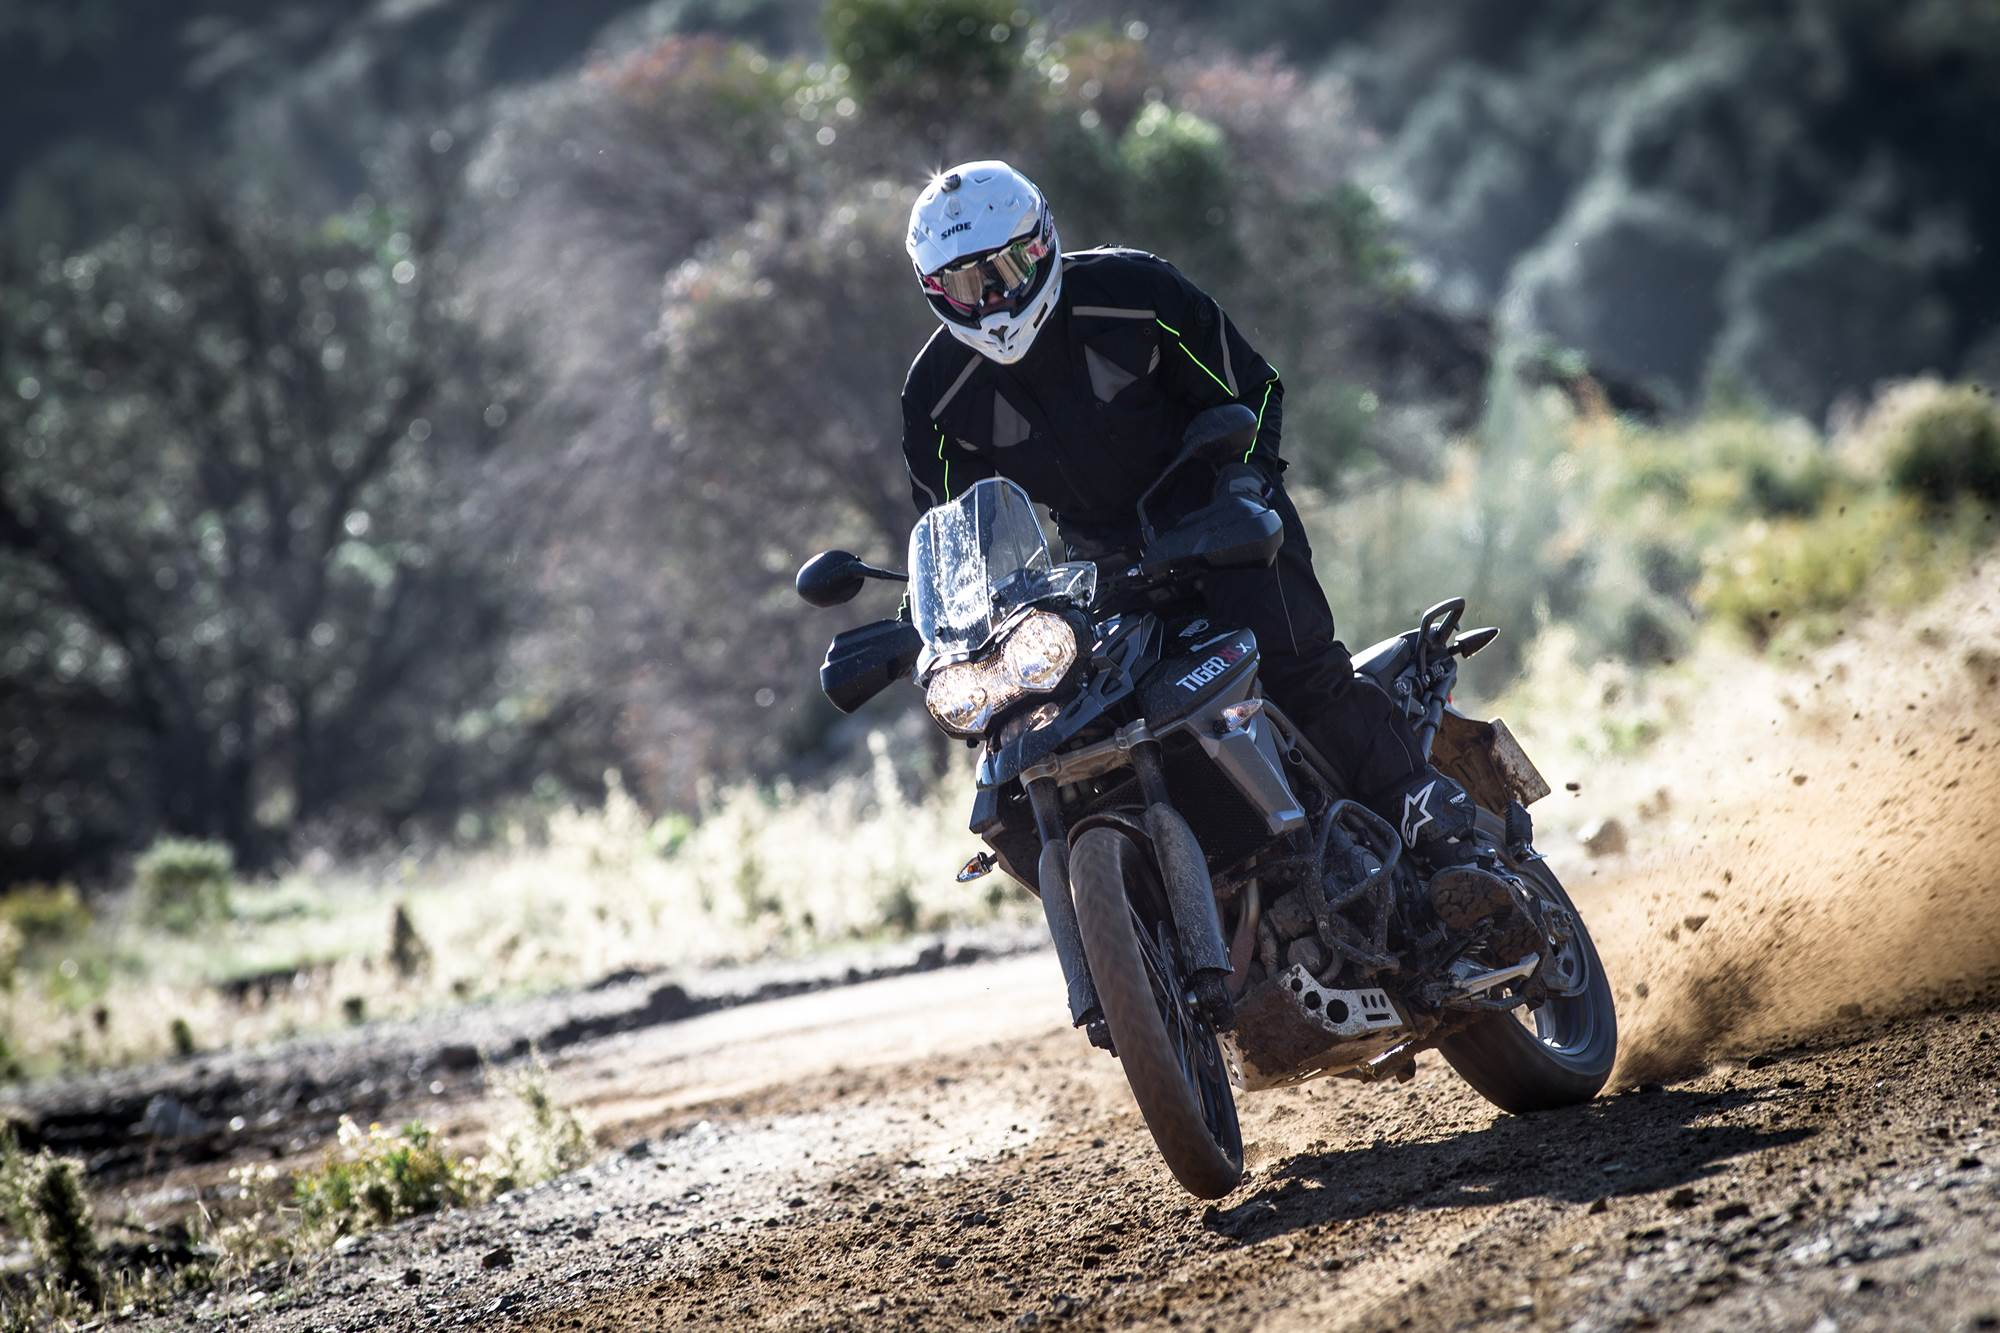 2015 Triumph Tiger 800 XCx off roading